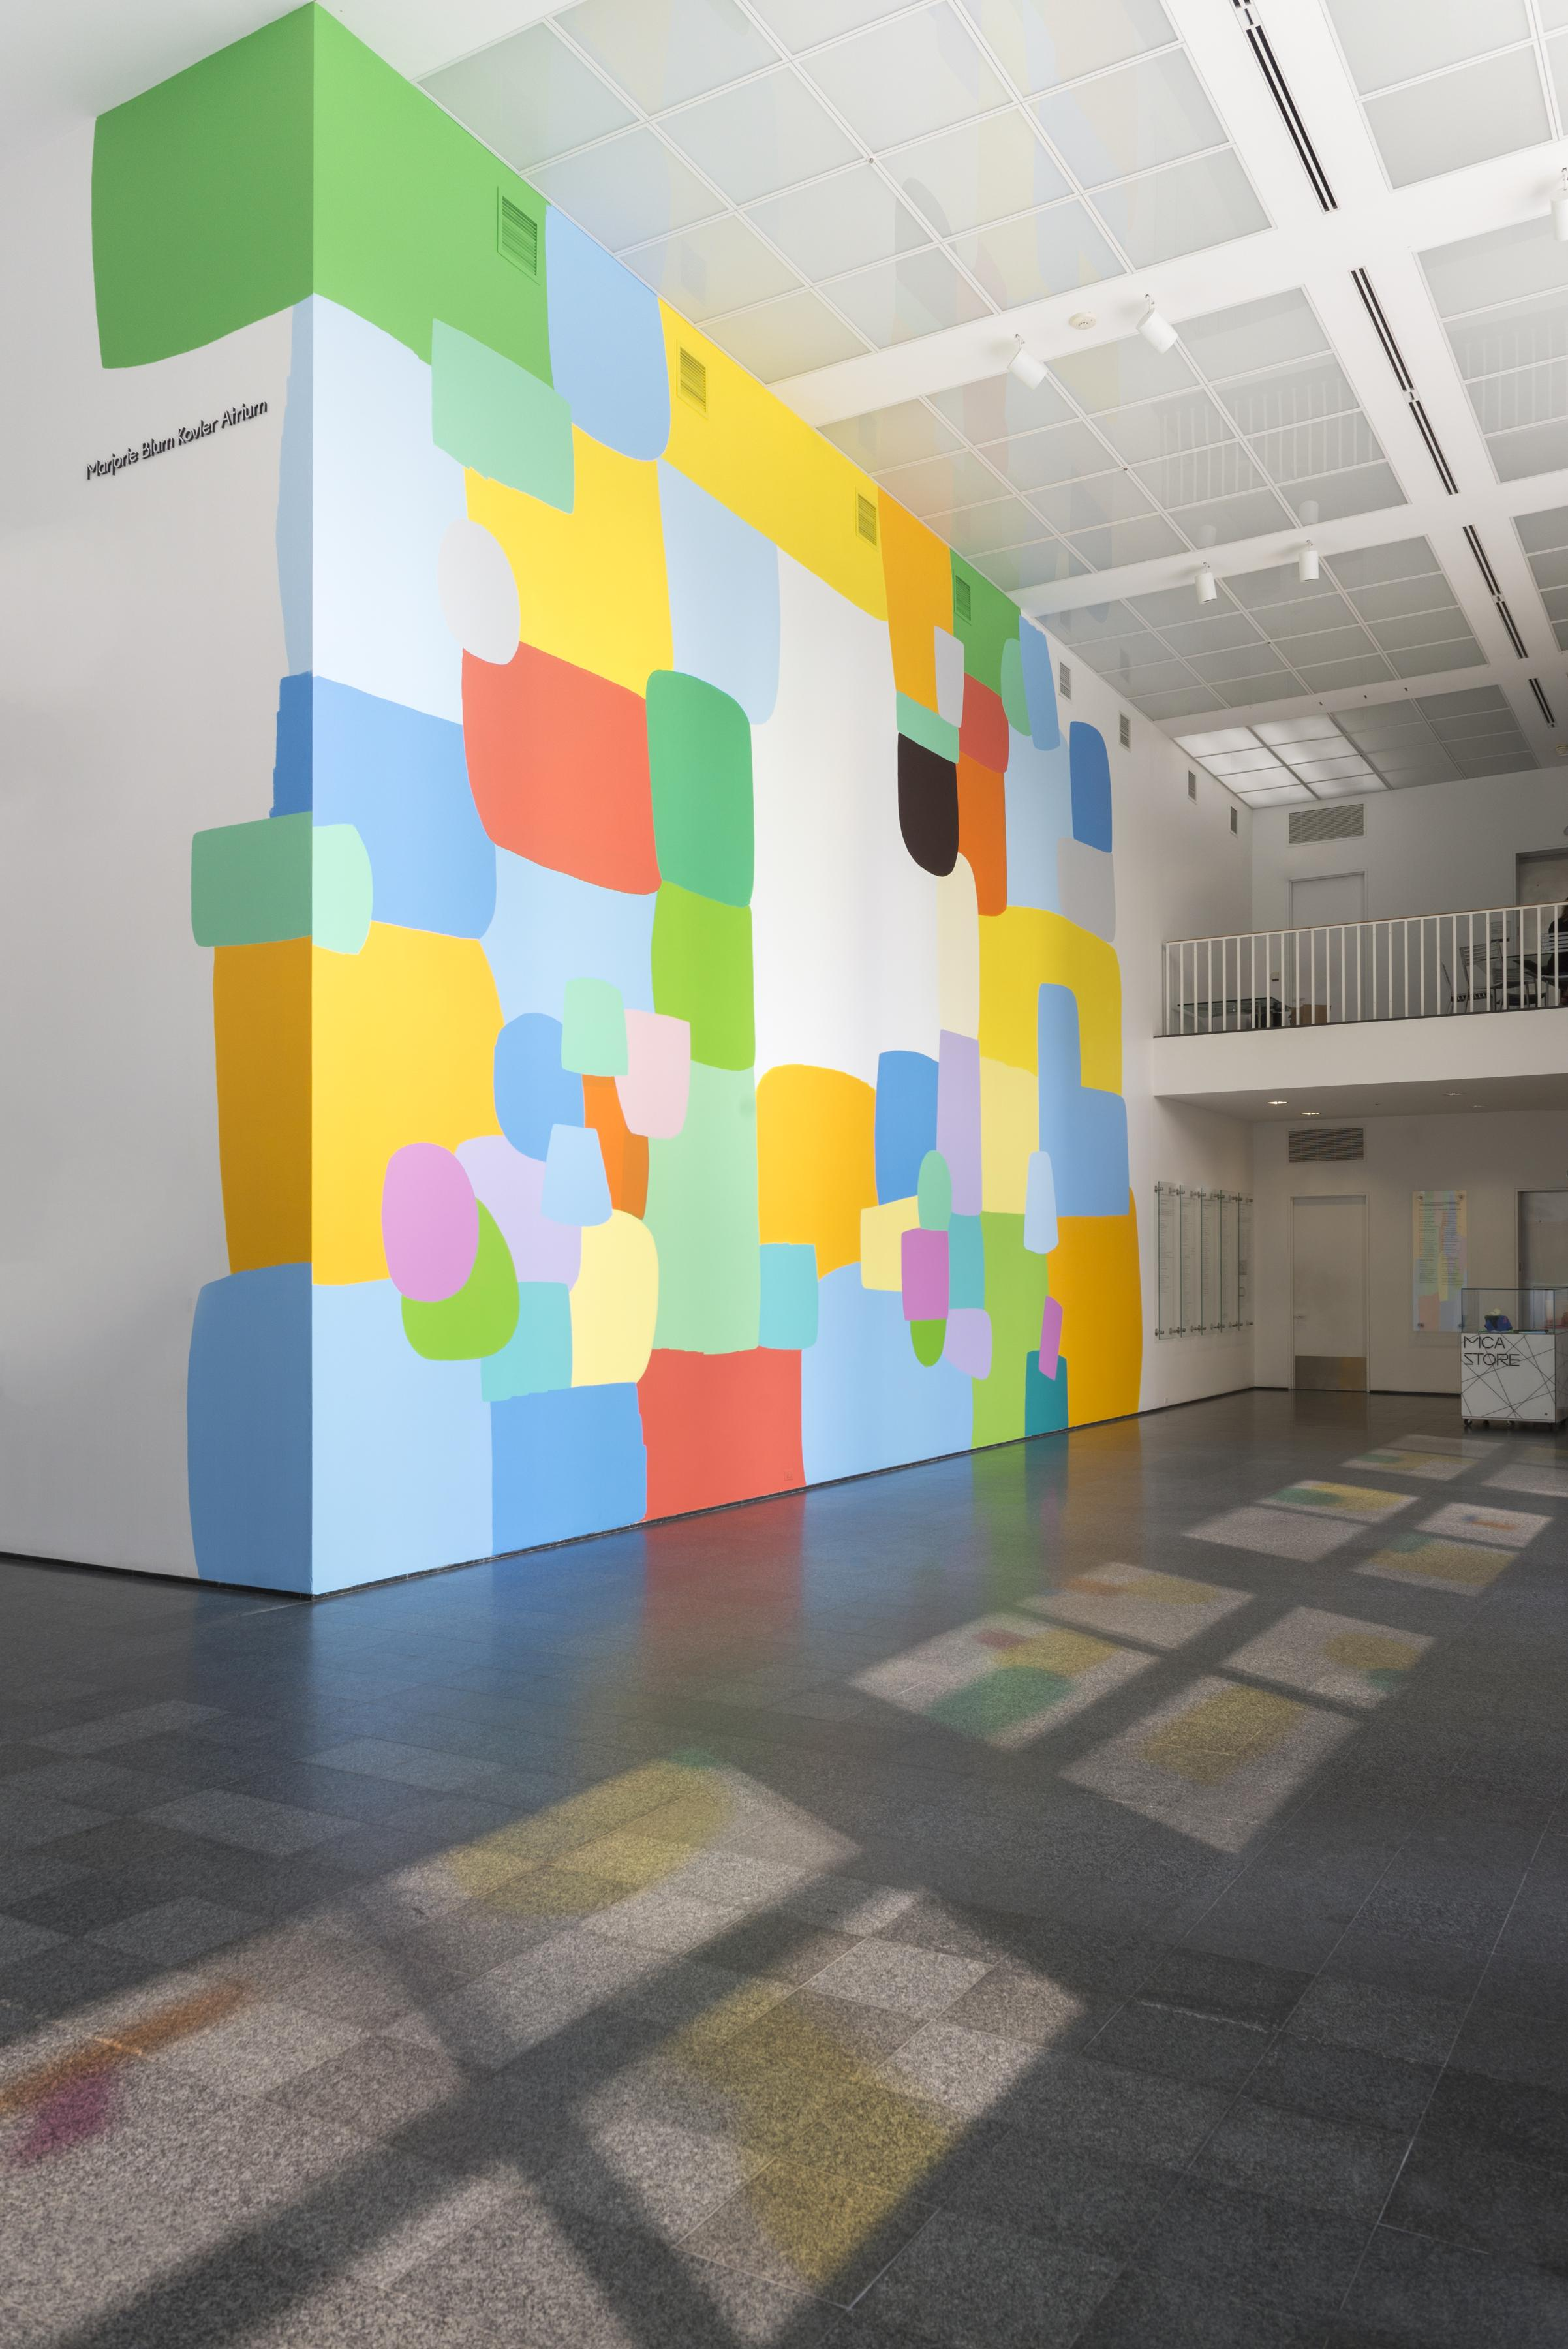 The MCA Atrium features a prominent, colorful mural on the walls and spots of illuminated color on the floor.